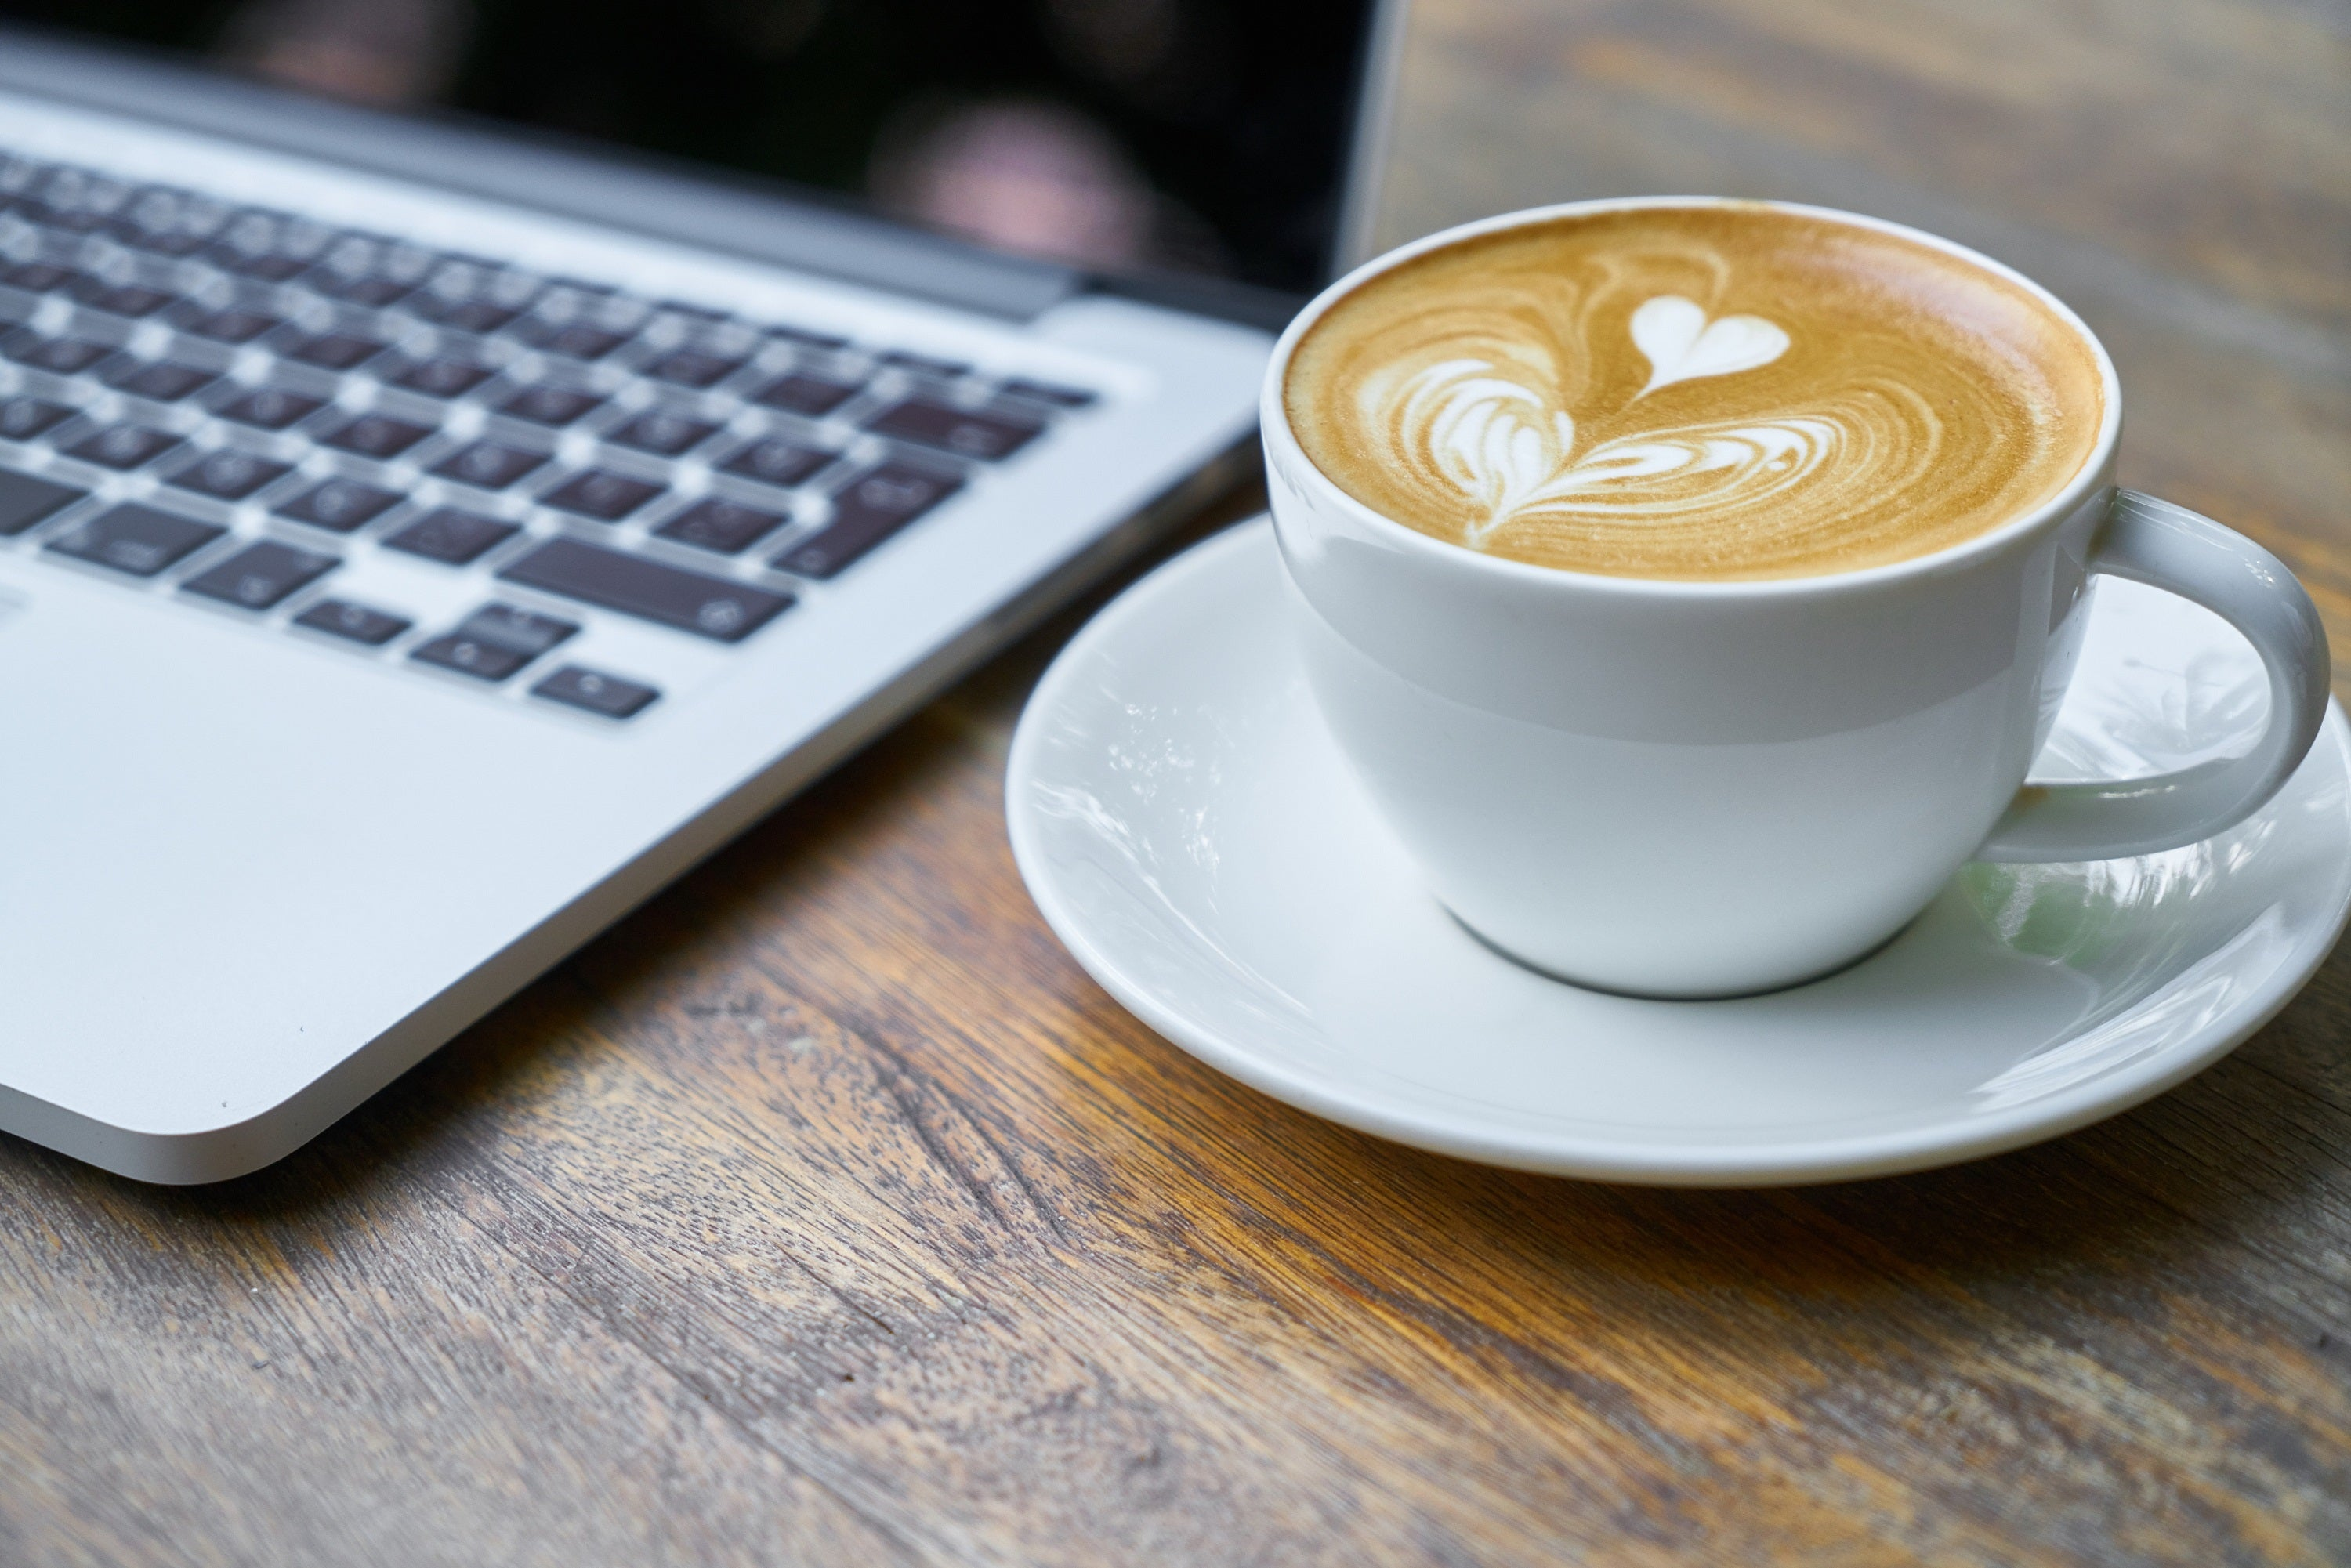 A latte cup beside a laptop.